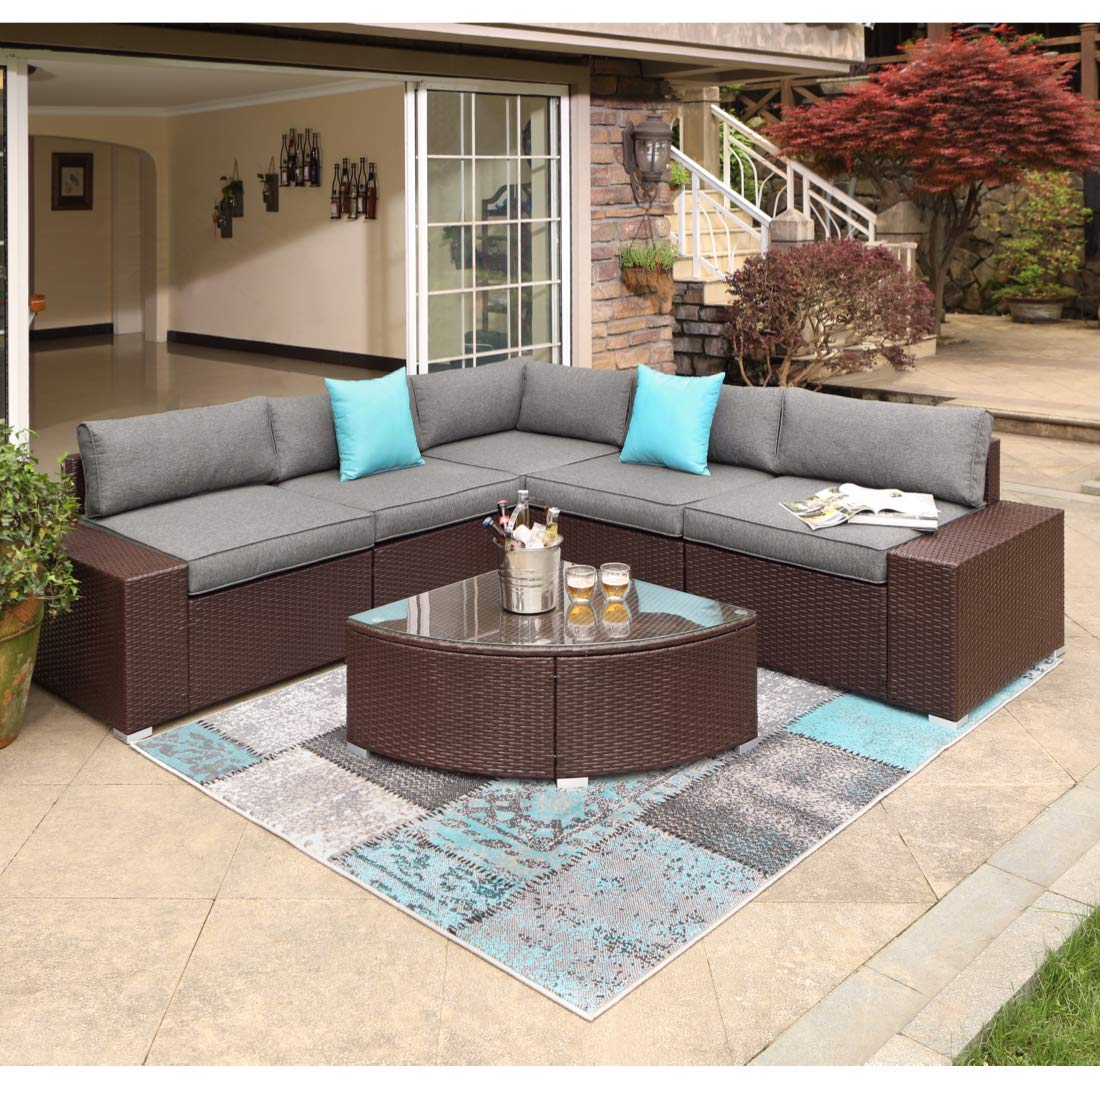 COSIEST 6-Piece Outdoor Furniture Chocolate Brown Wicker Executive Sectional Sofa w Dark Grey Thick Cushions, Glass-Top 1 4-Circle Coffee Table, 2 Turquoise Pillows Incl. Waterproof Cover, Clips